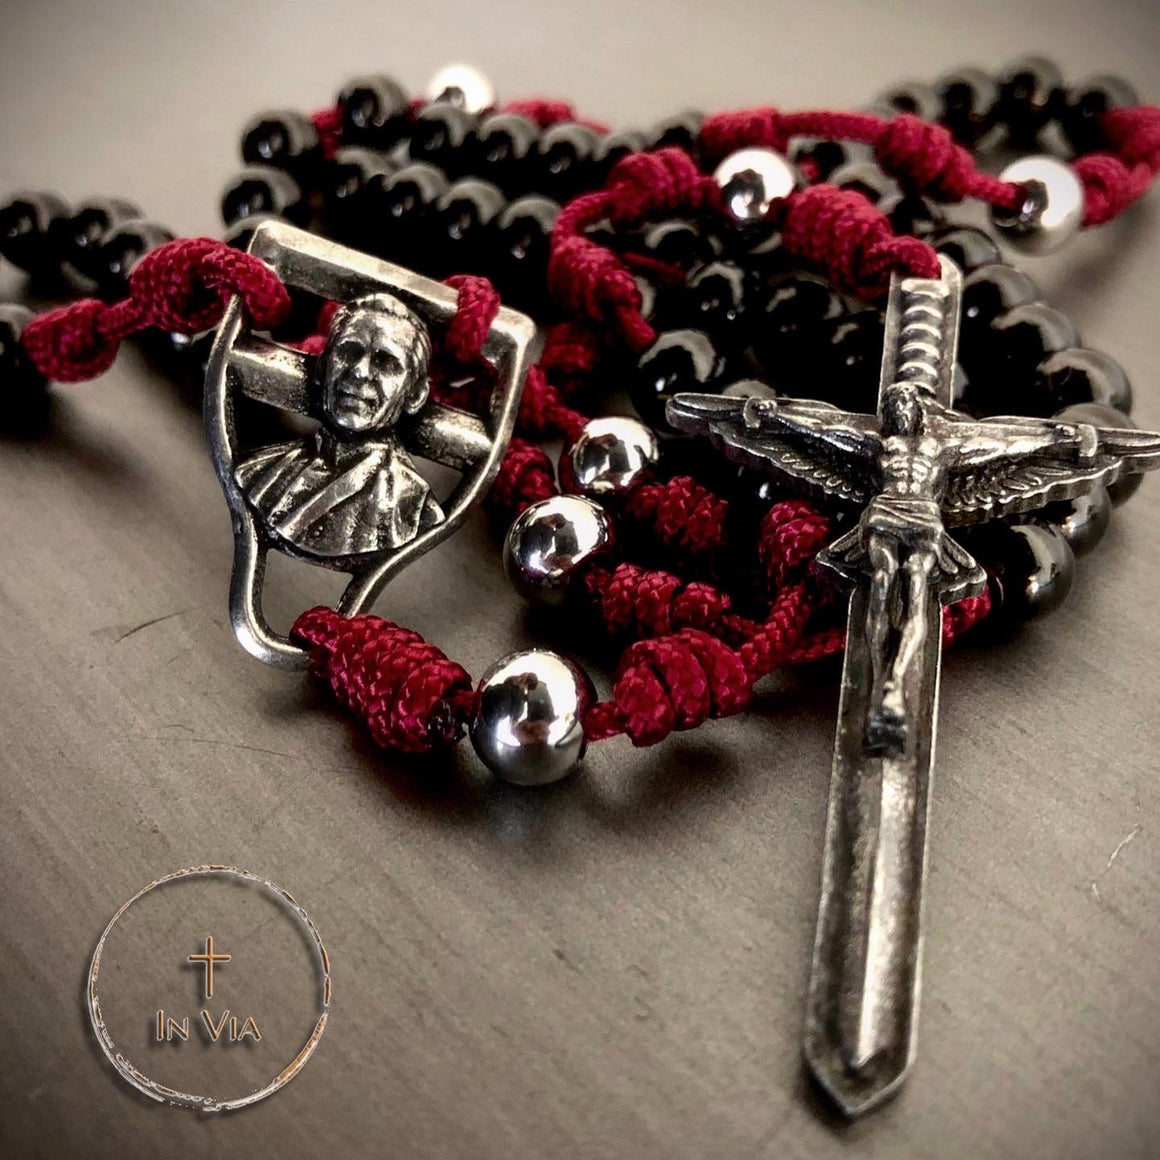 In Via Archbishop Fulton J. Sheen Defender Rosary